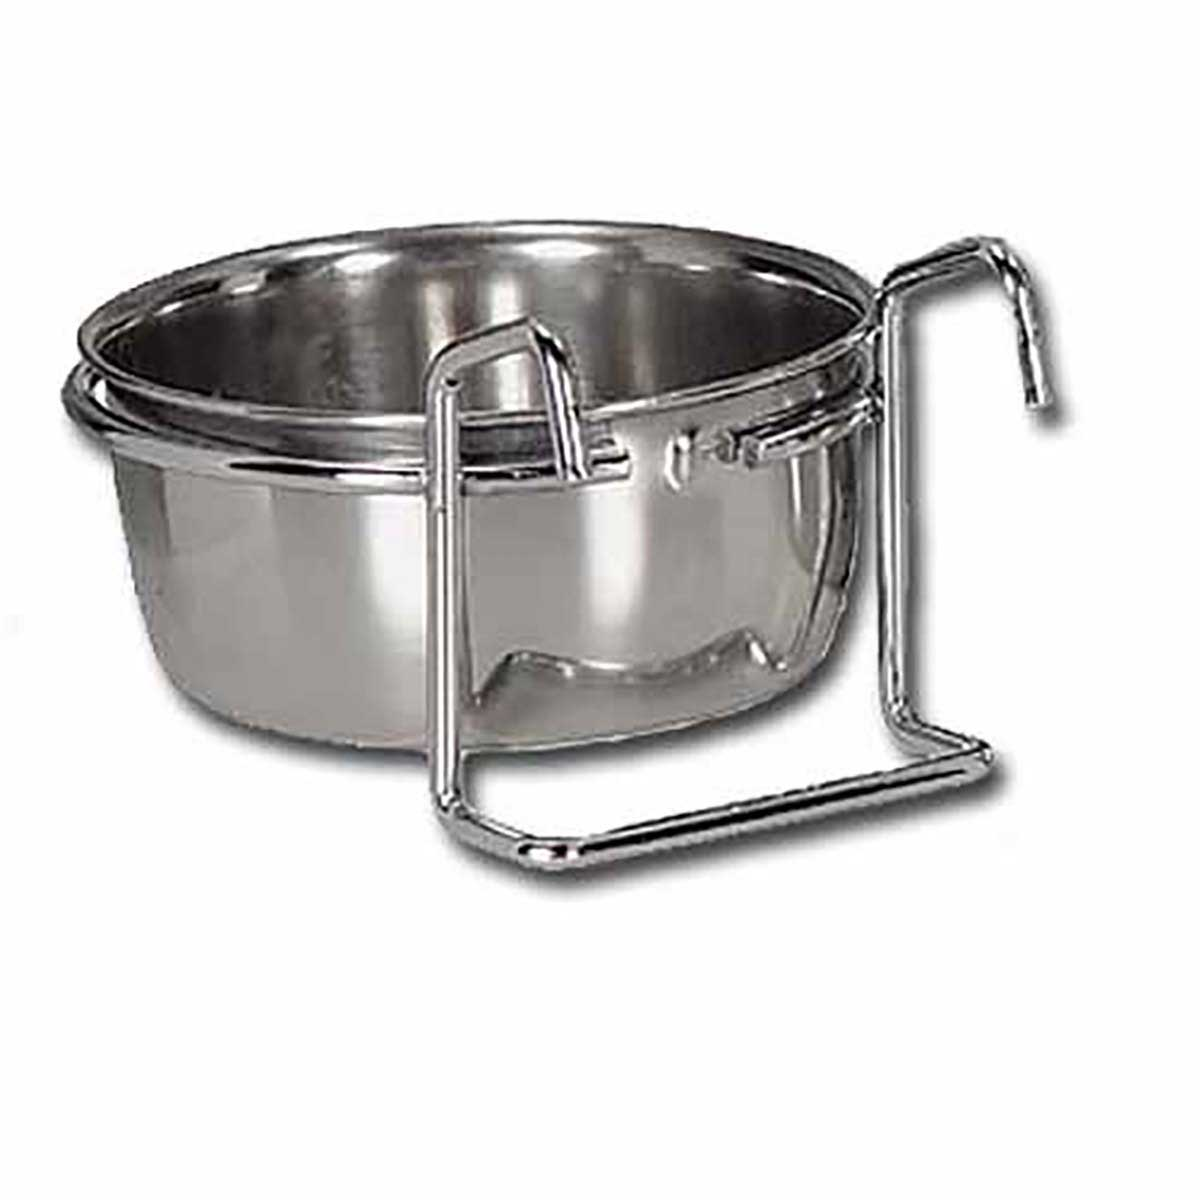 Stainless Steel Indipets Coop Cup With Hanger 20 oz